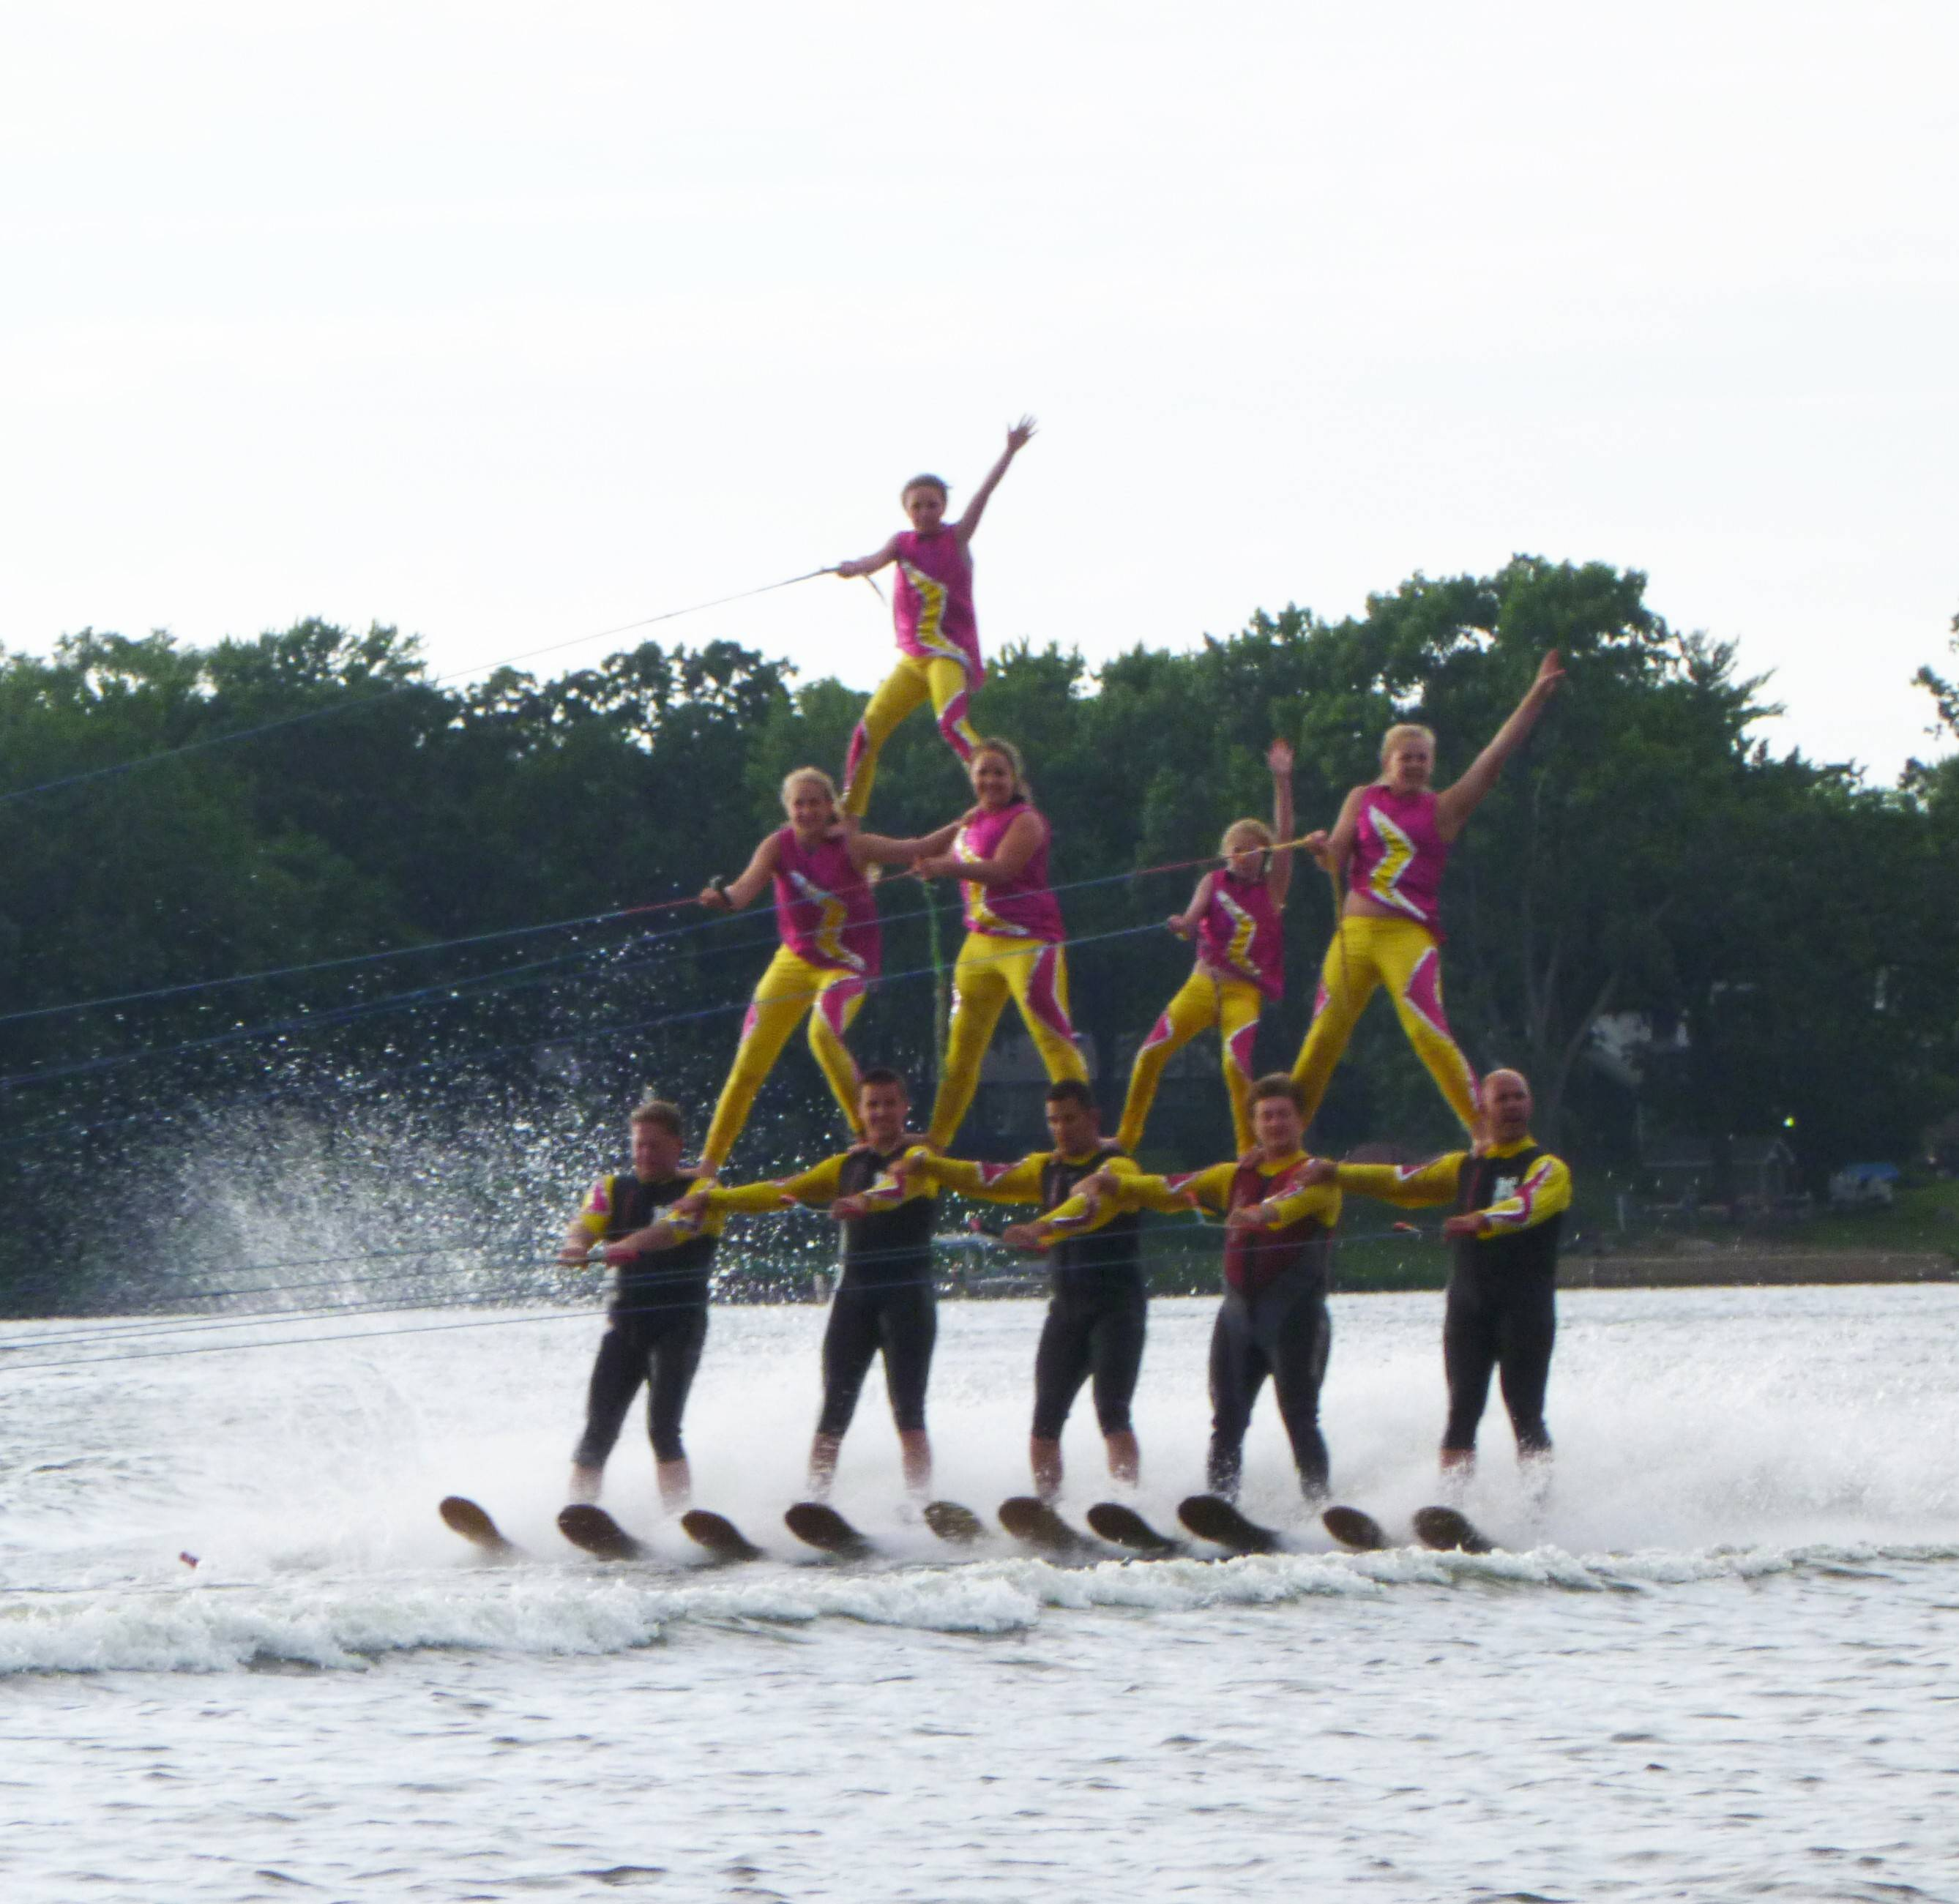 Soft sand, the beach, swimming and a water ski show are among the attractions at the free community picnic June 28 at Diamond Lake Beach in Mundelein.